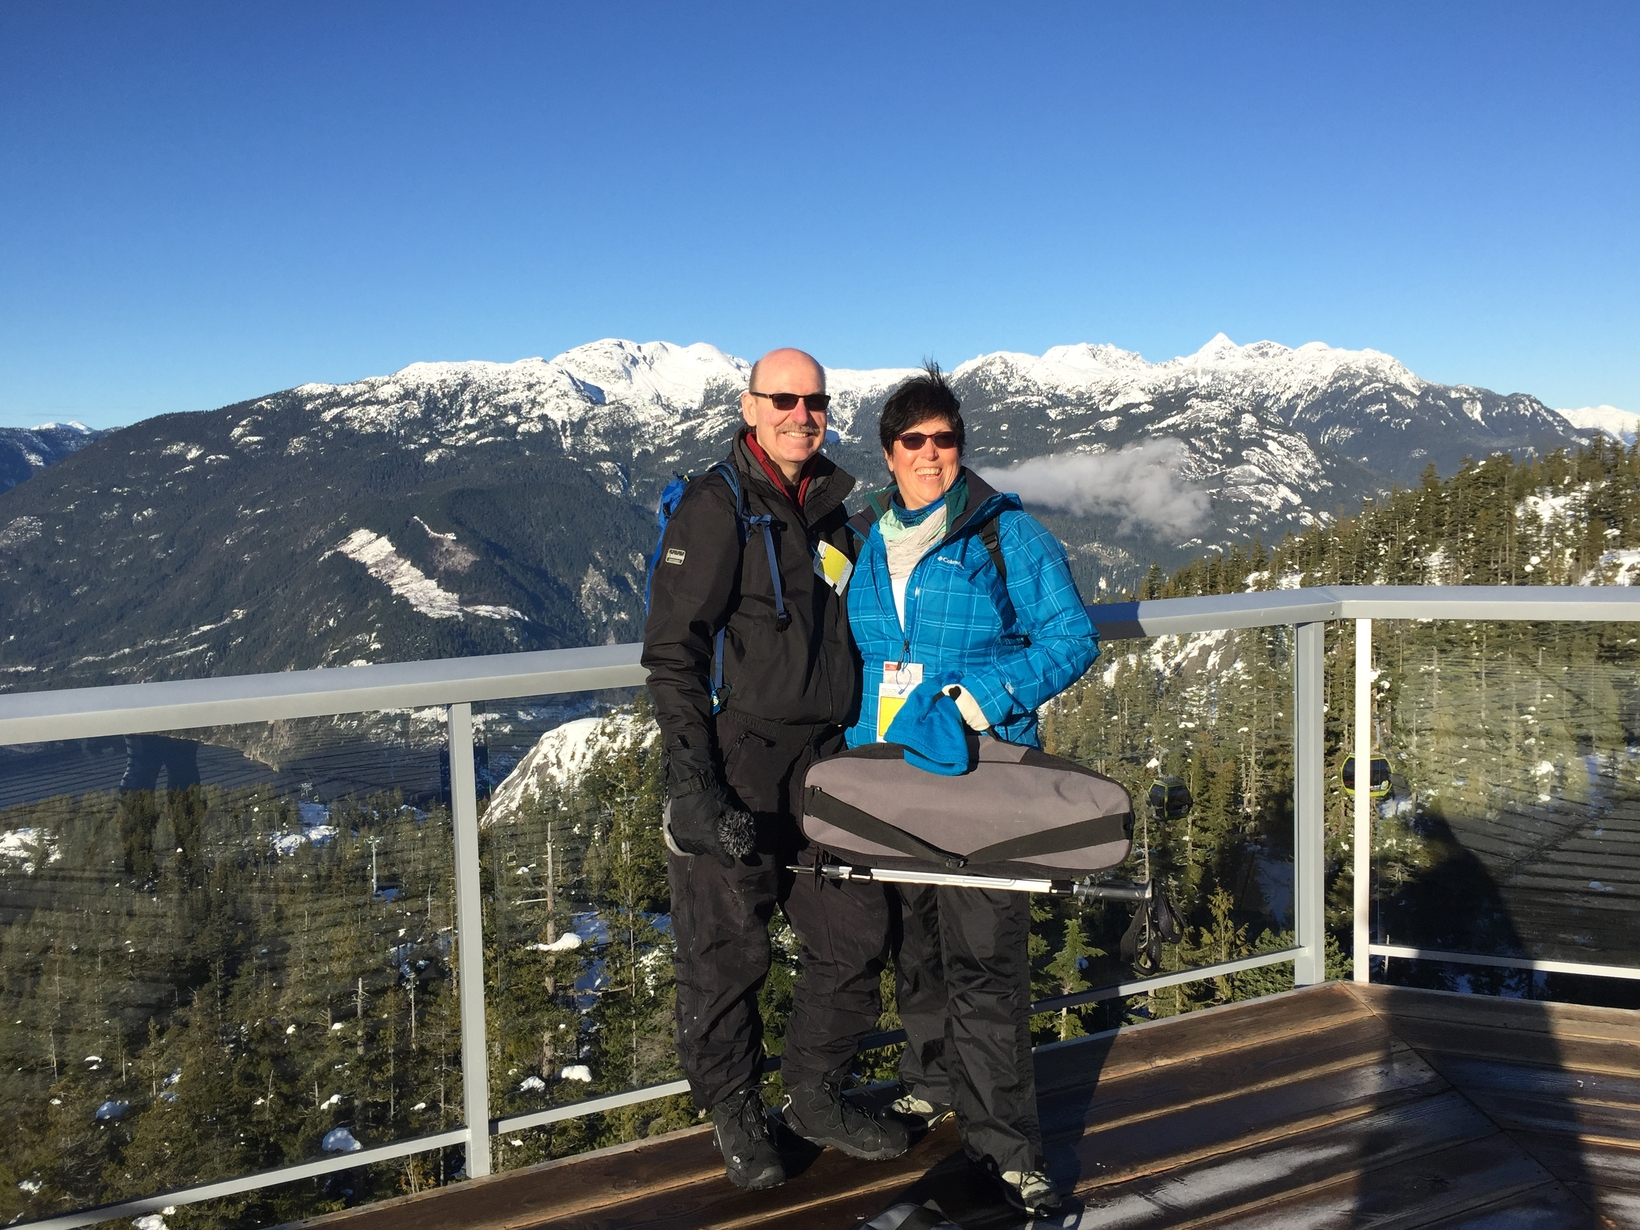 Normand & Beth from Mission, British Columbia, Canada